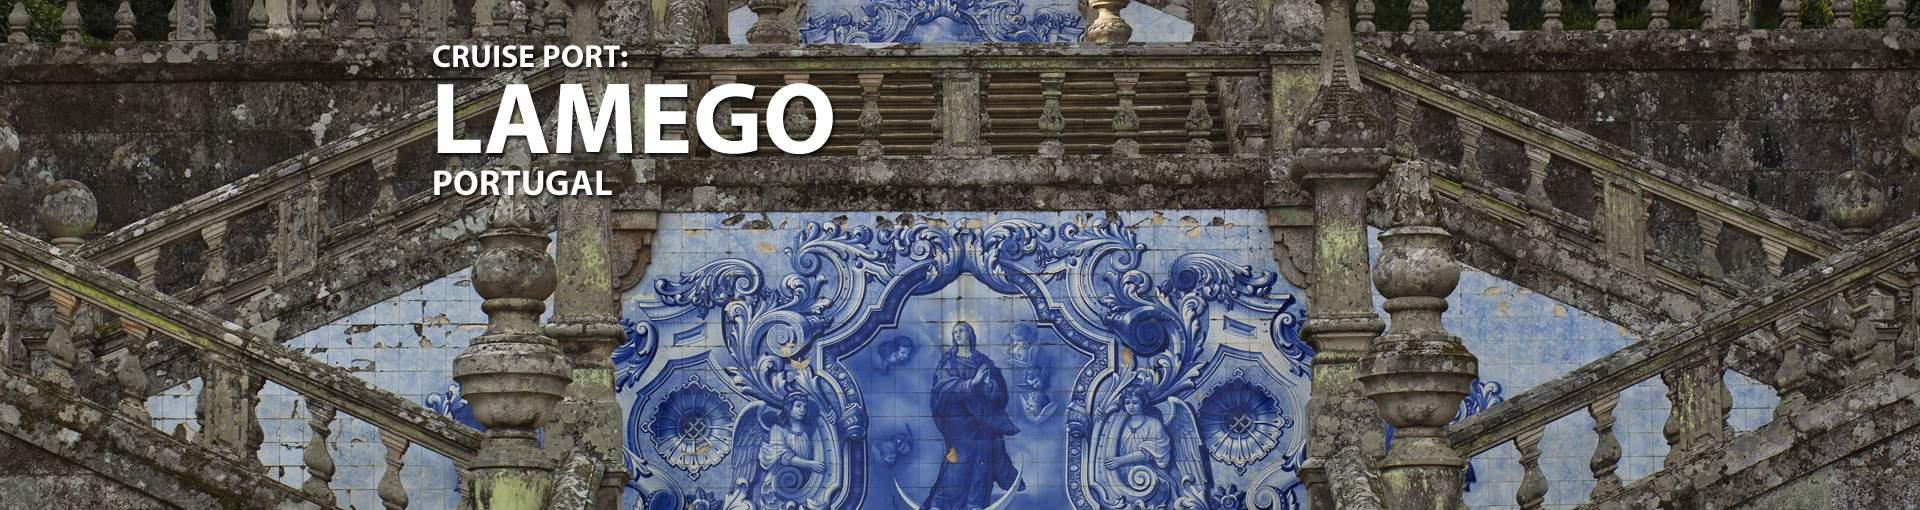 Cruises to Lamego, Portugal